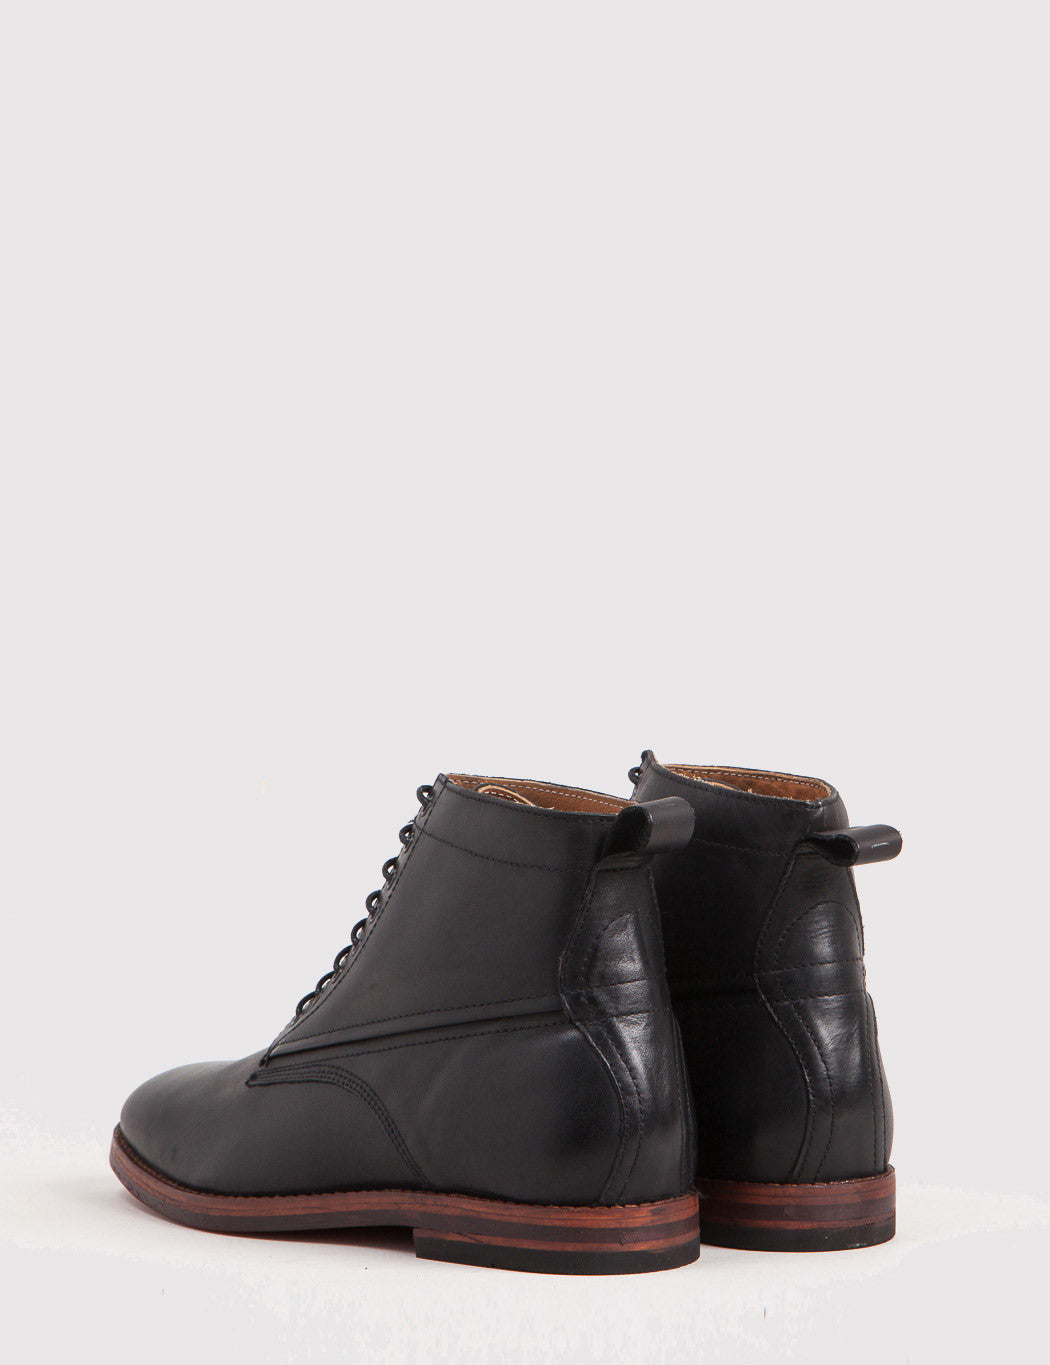 Hudson Forge Leather Boot - Black